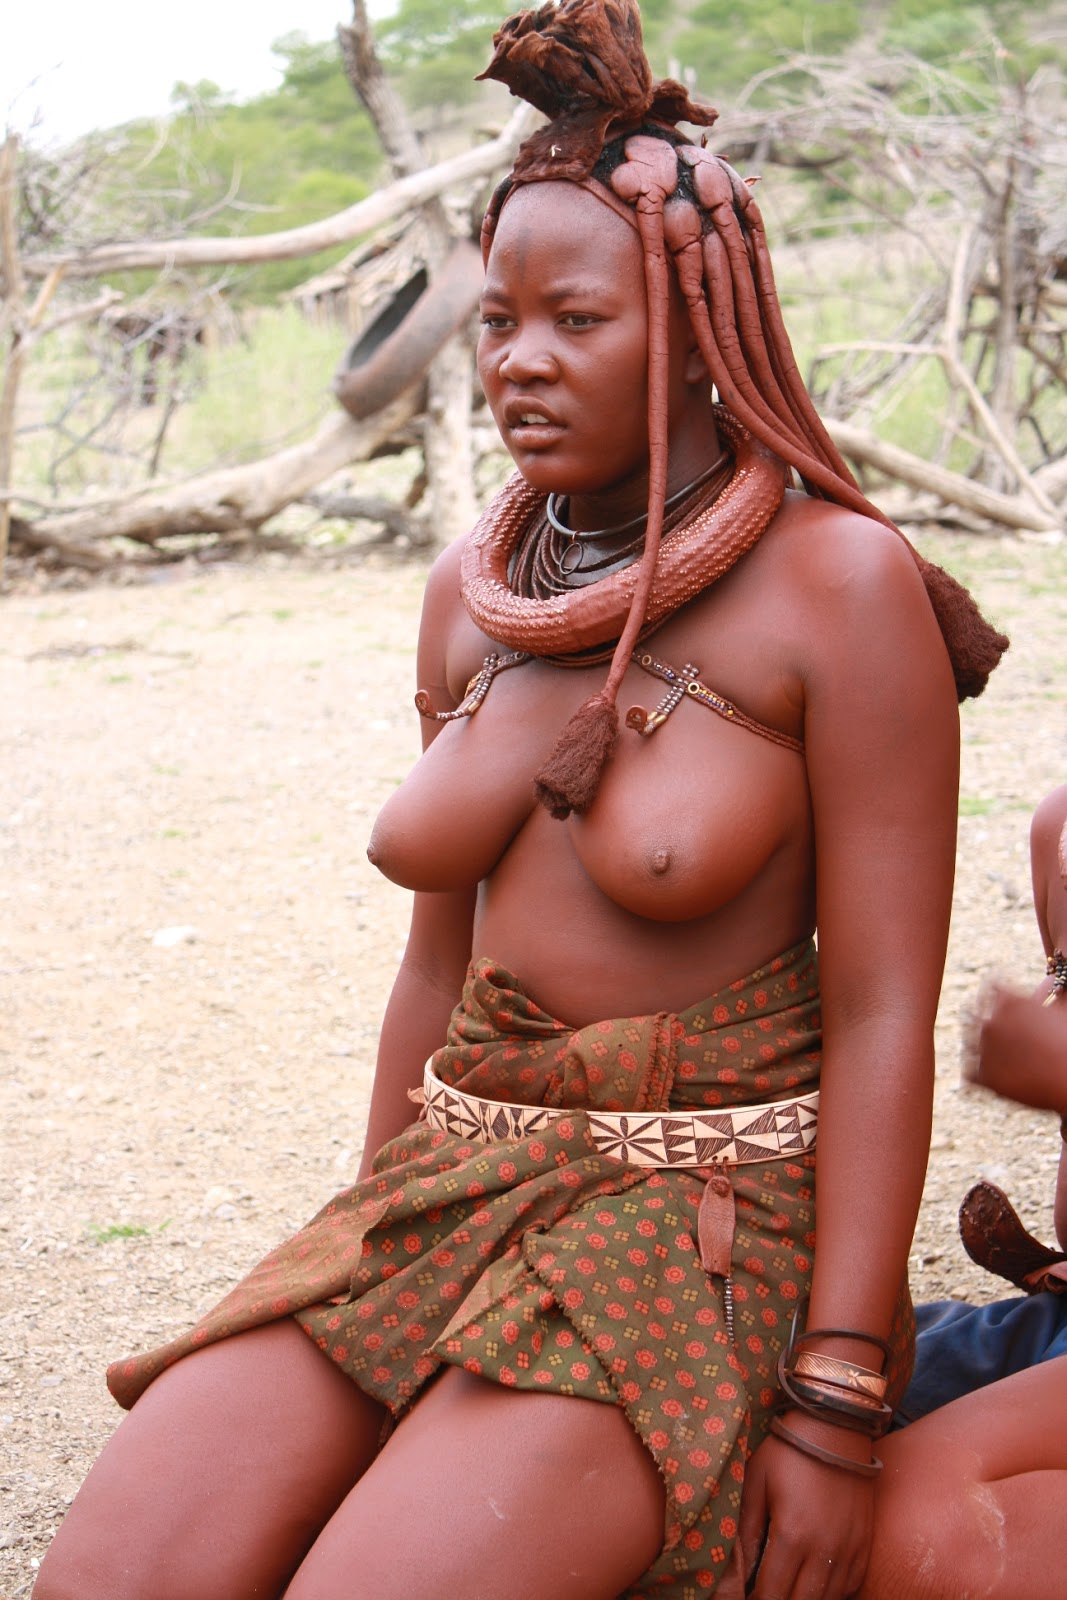 For the Nude sexy african babes